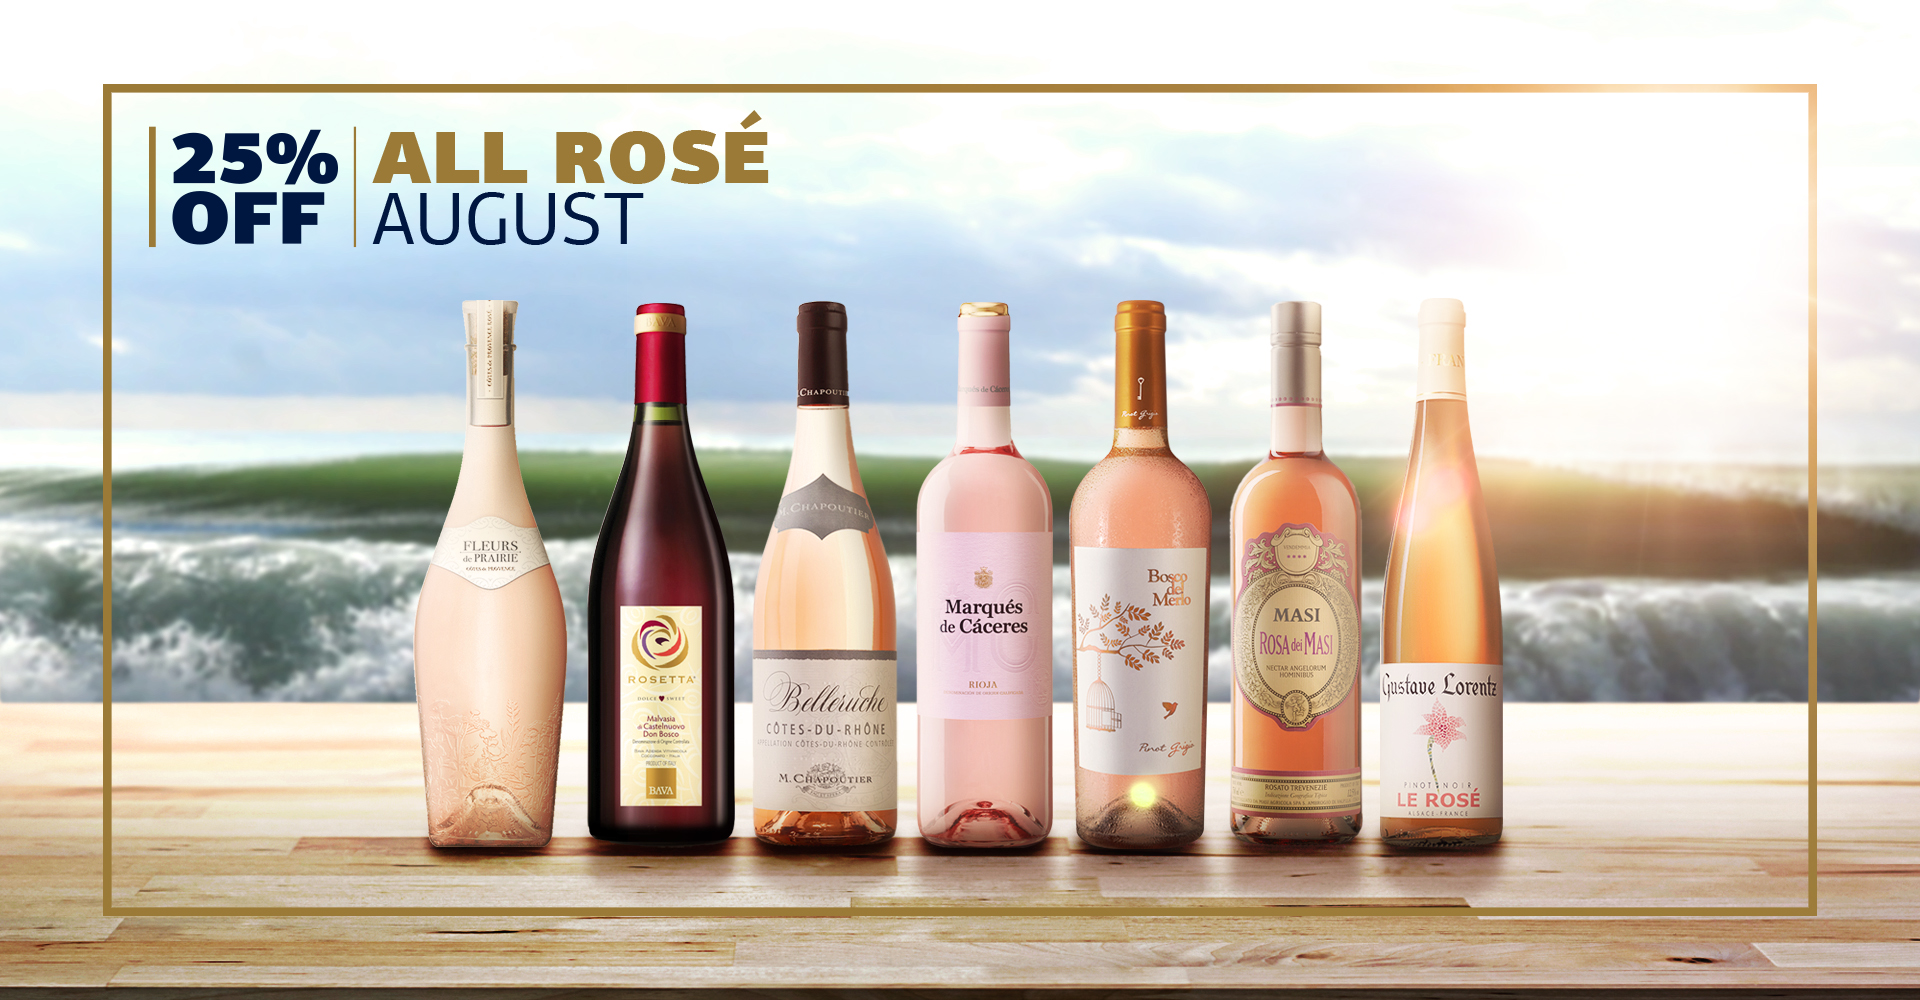 ALL-ROSE-AUGUST-WEB-1